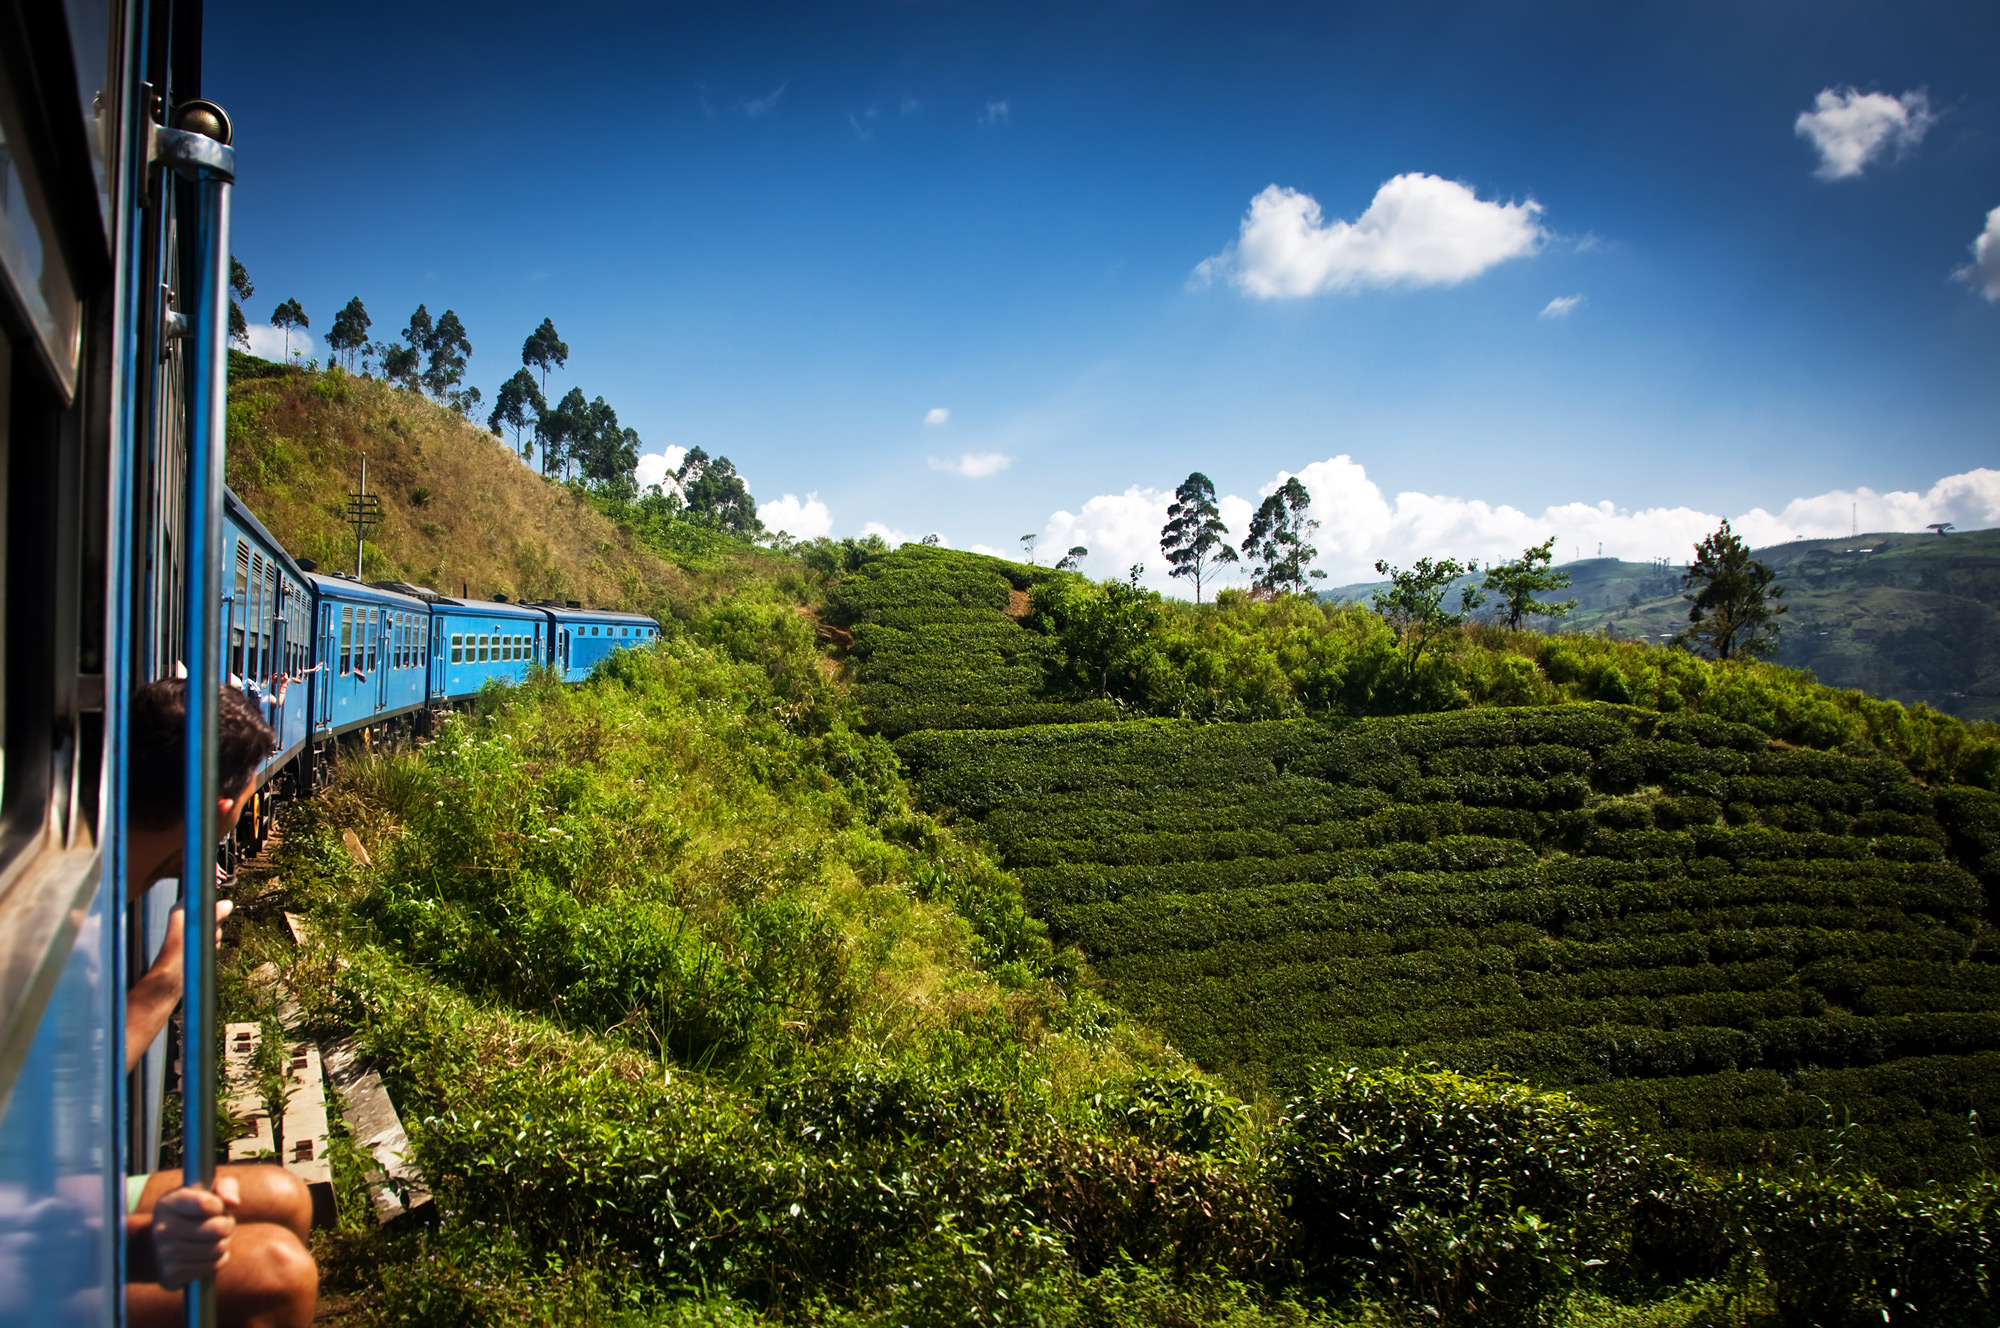 Tea plantation view from train, discover sri lanka